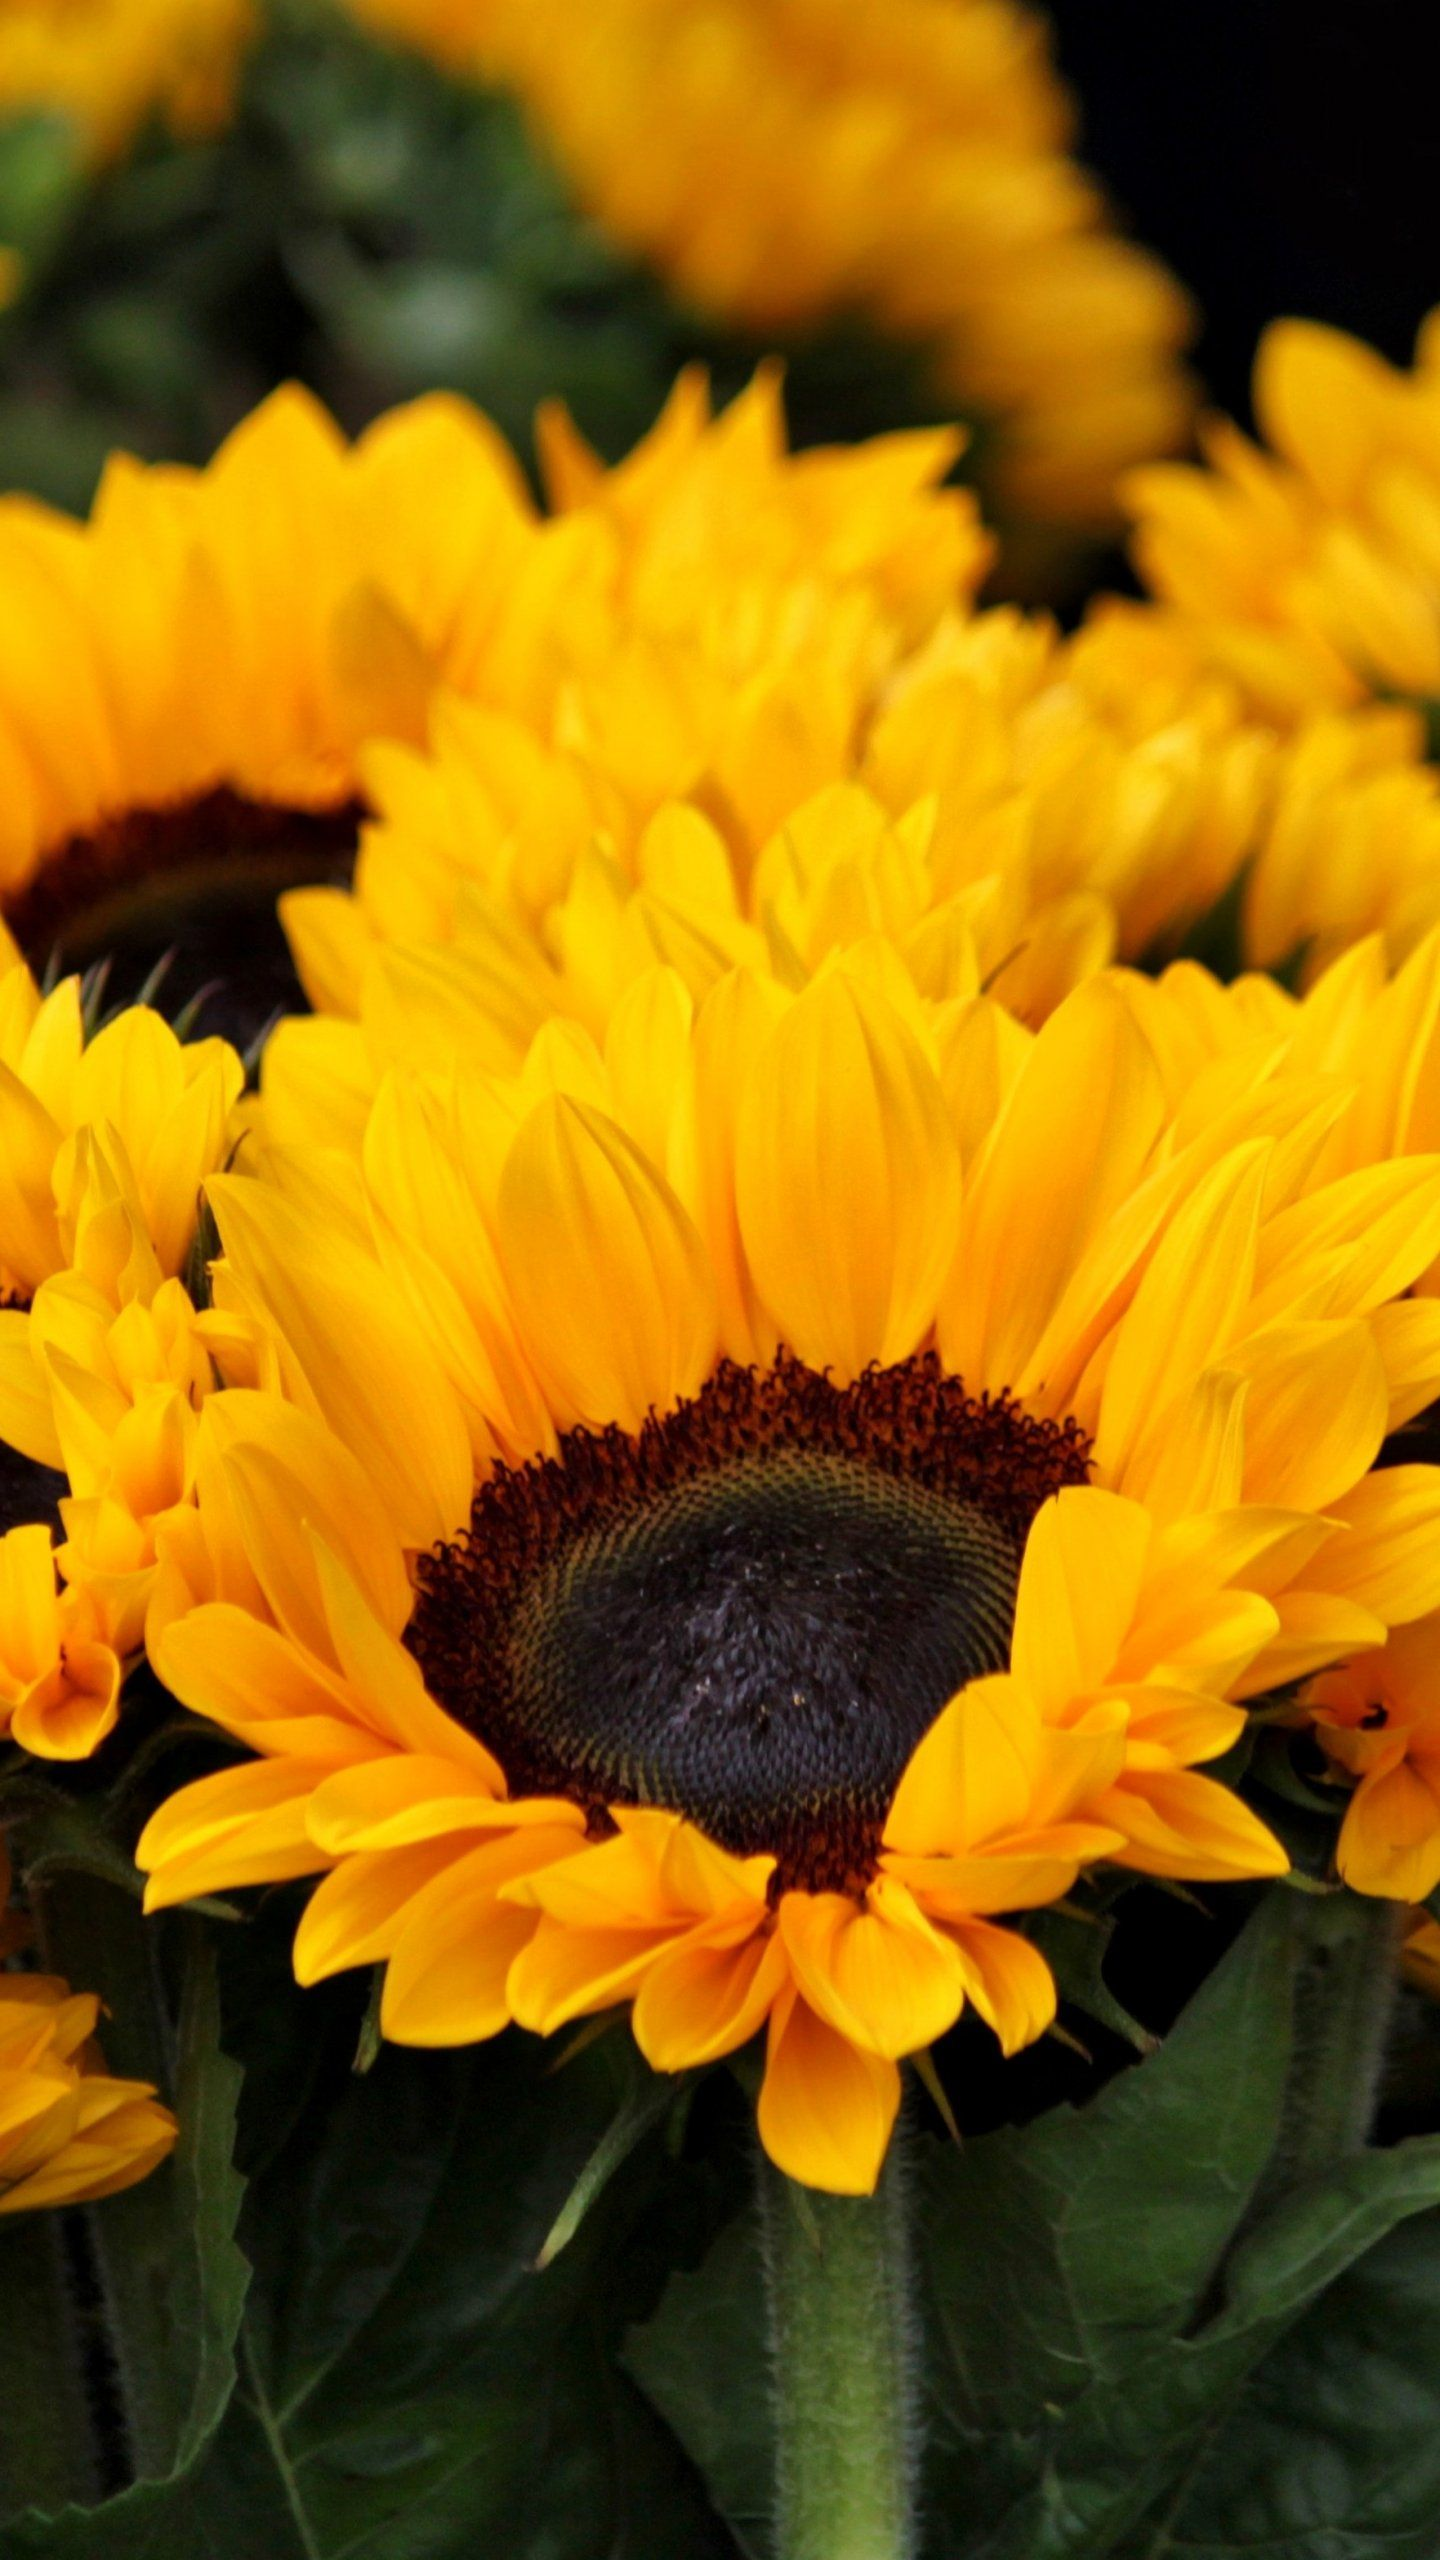 Sunflowers Wallpaper iPhone, Android & Desktop